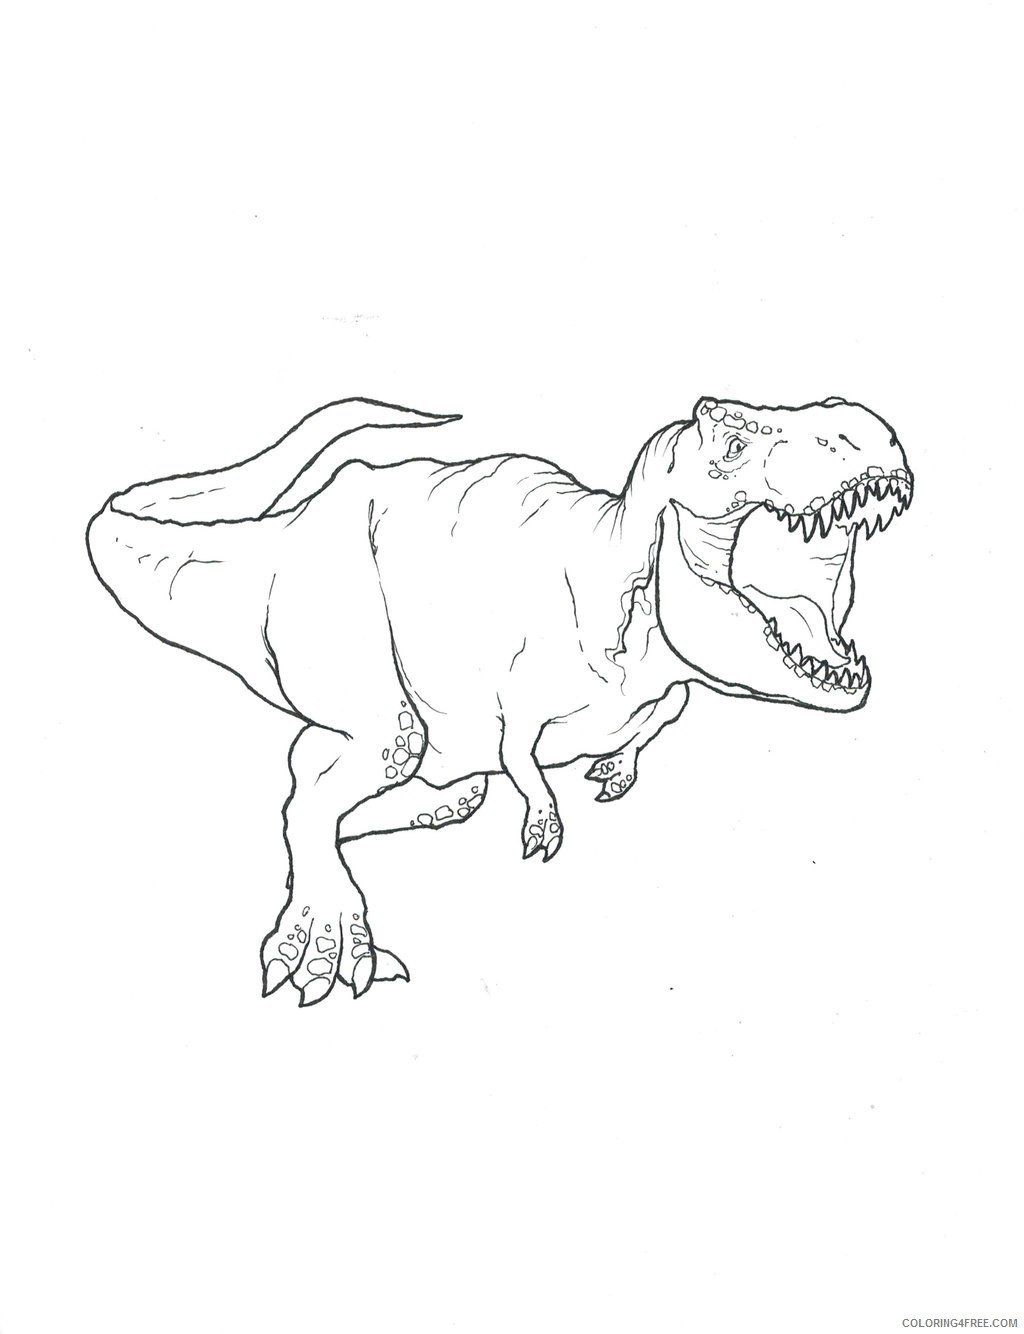 Jurassic World Coloring Pages T Rex Coloring Pages Printable For Kids Coloring4free Dinosaur Coloring Pages Dinosaur Coloring Dinosaur Drawing